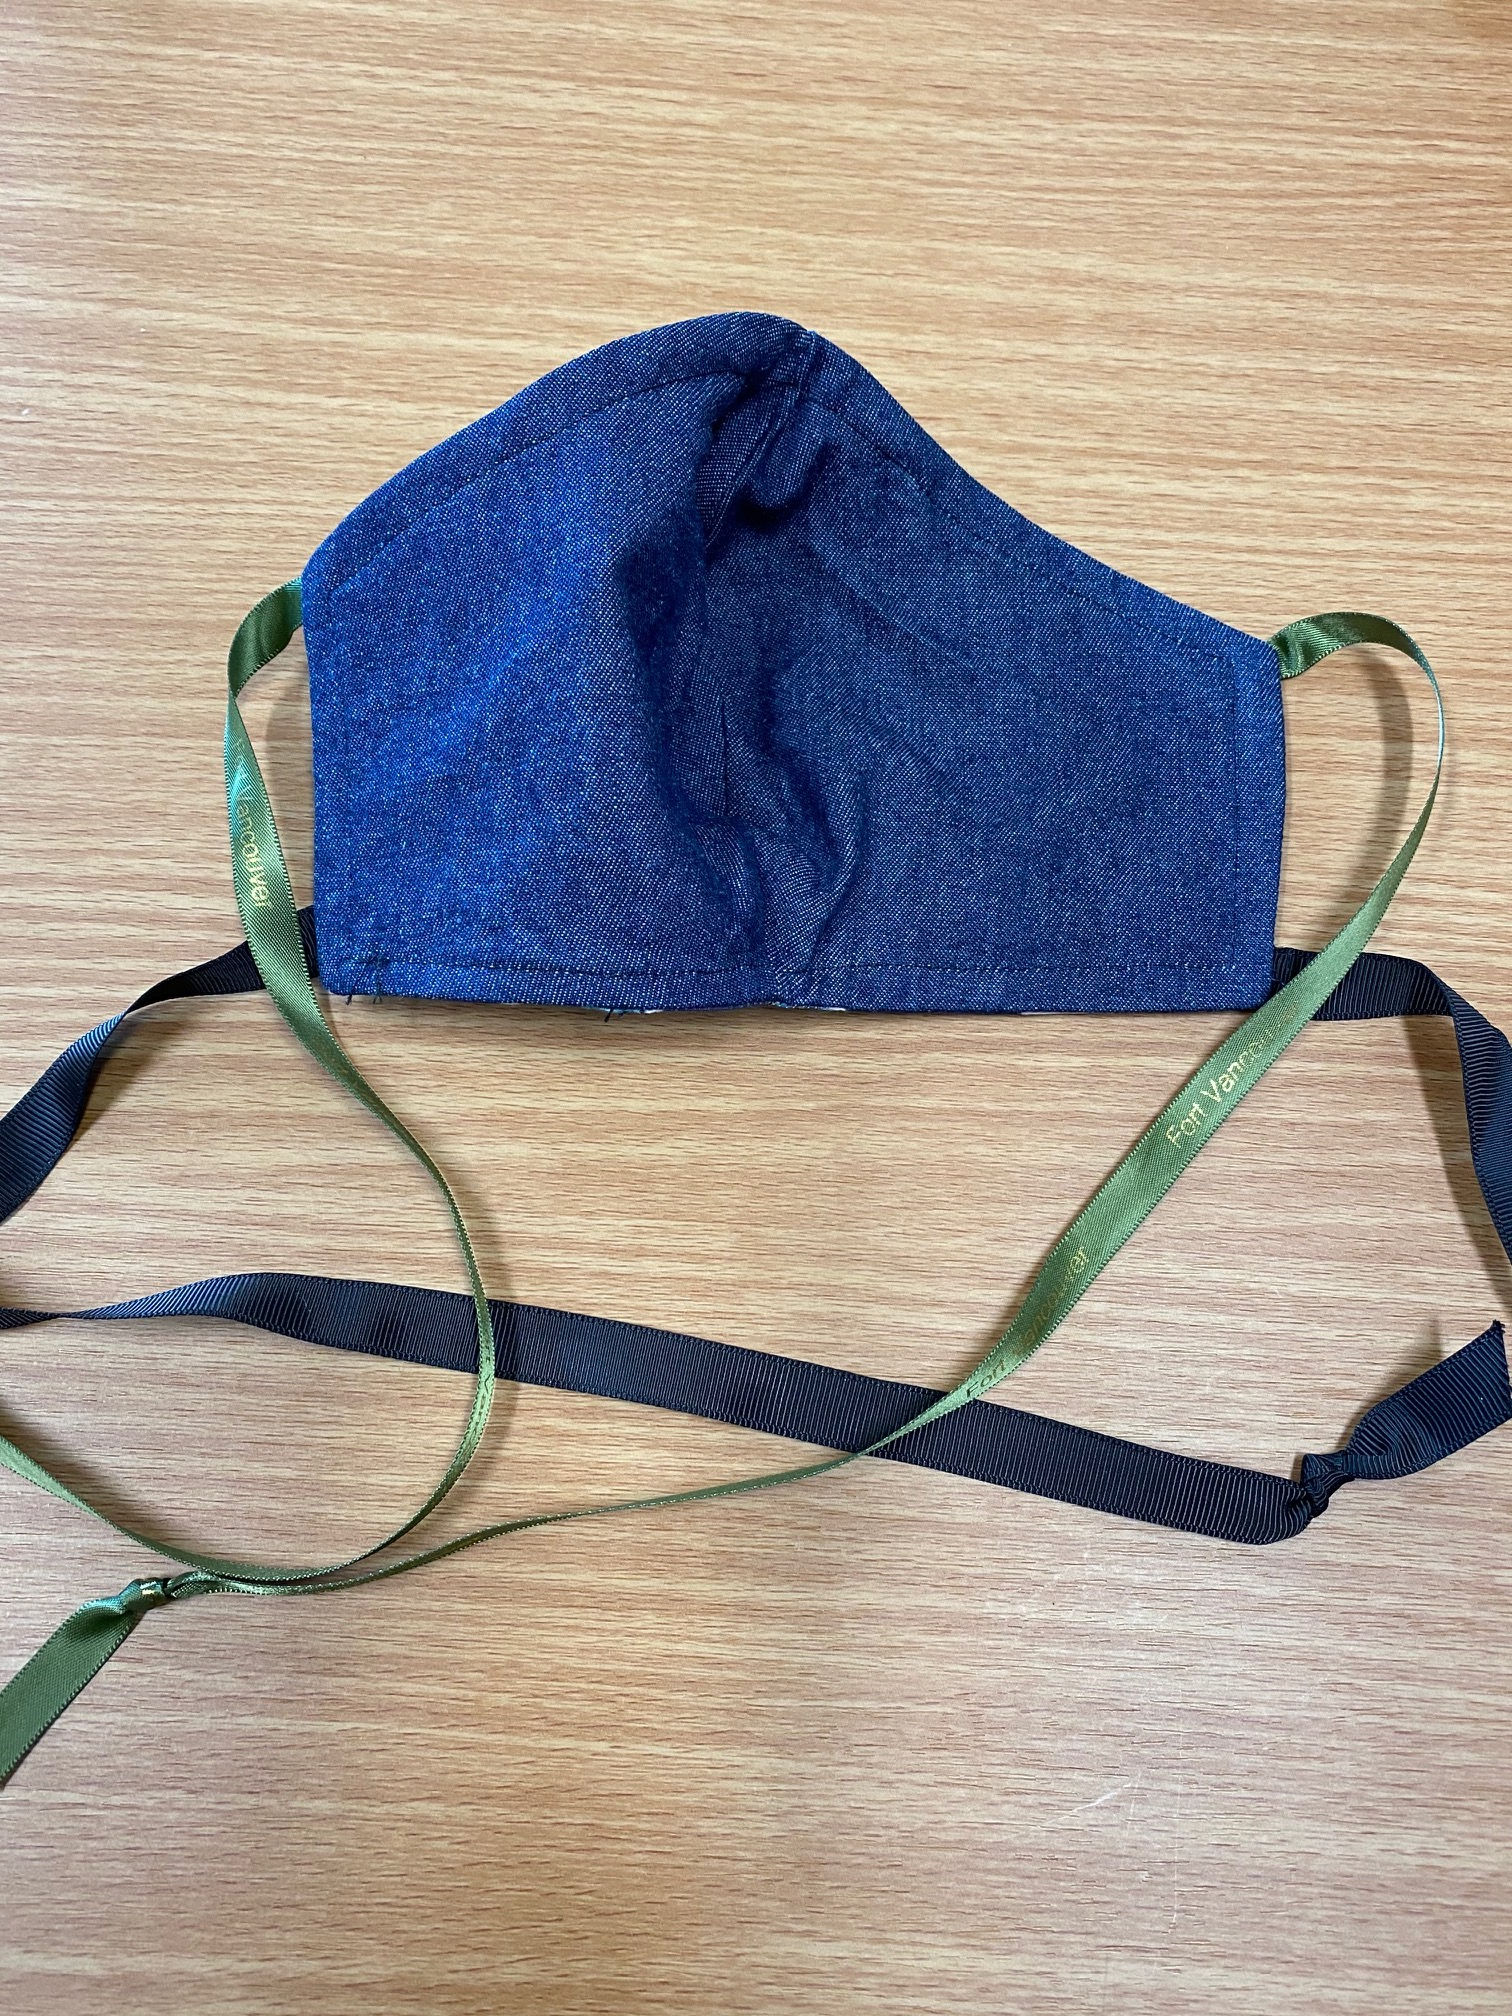 Exclusive Fort Vancouver Cloth Mask Blue SIZE Medium